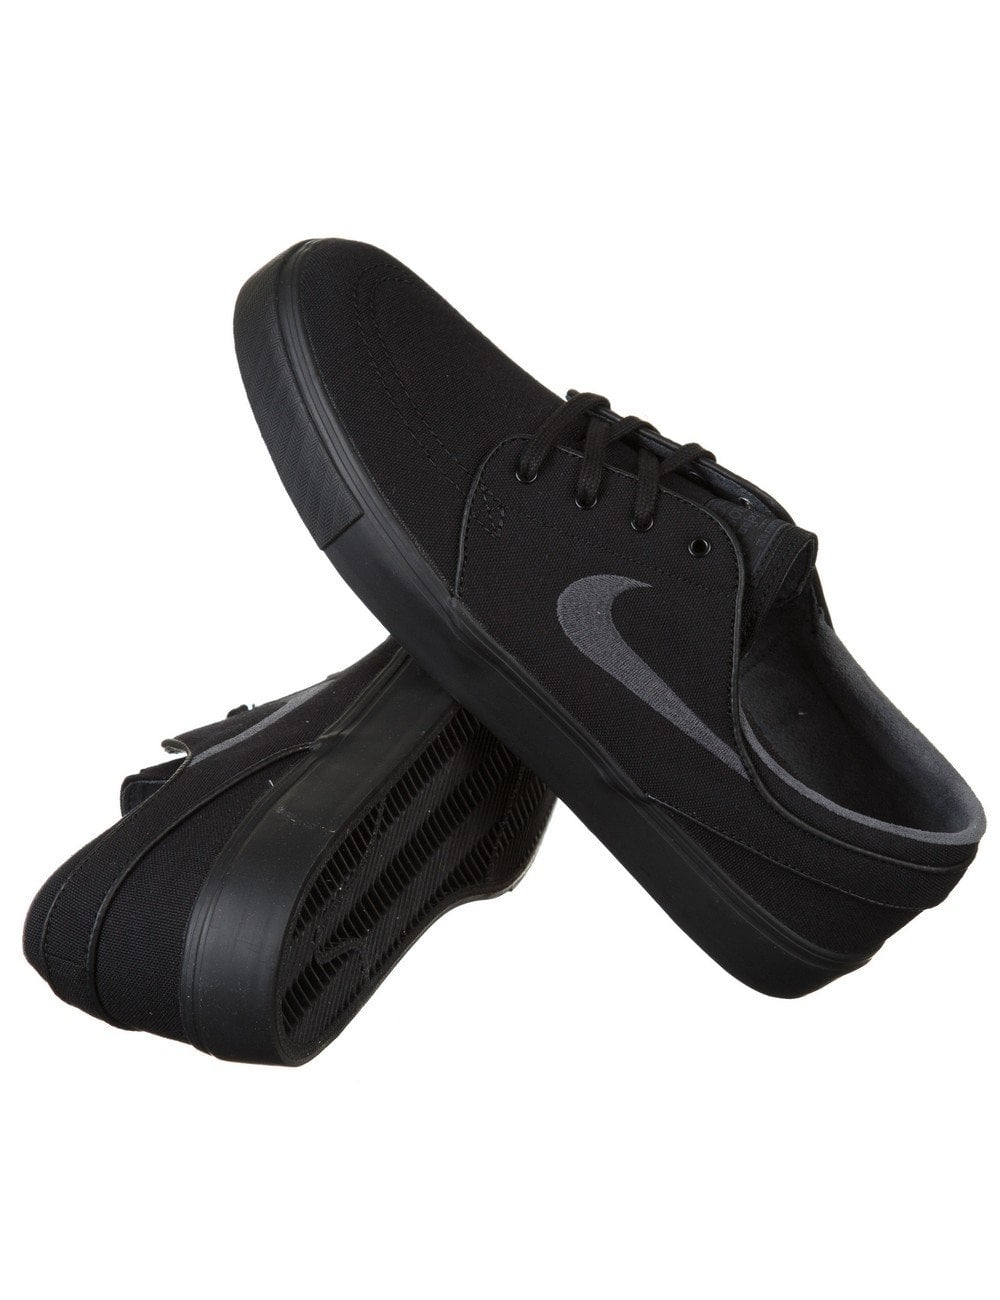 nike sb stefan janoski shoes